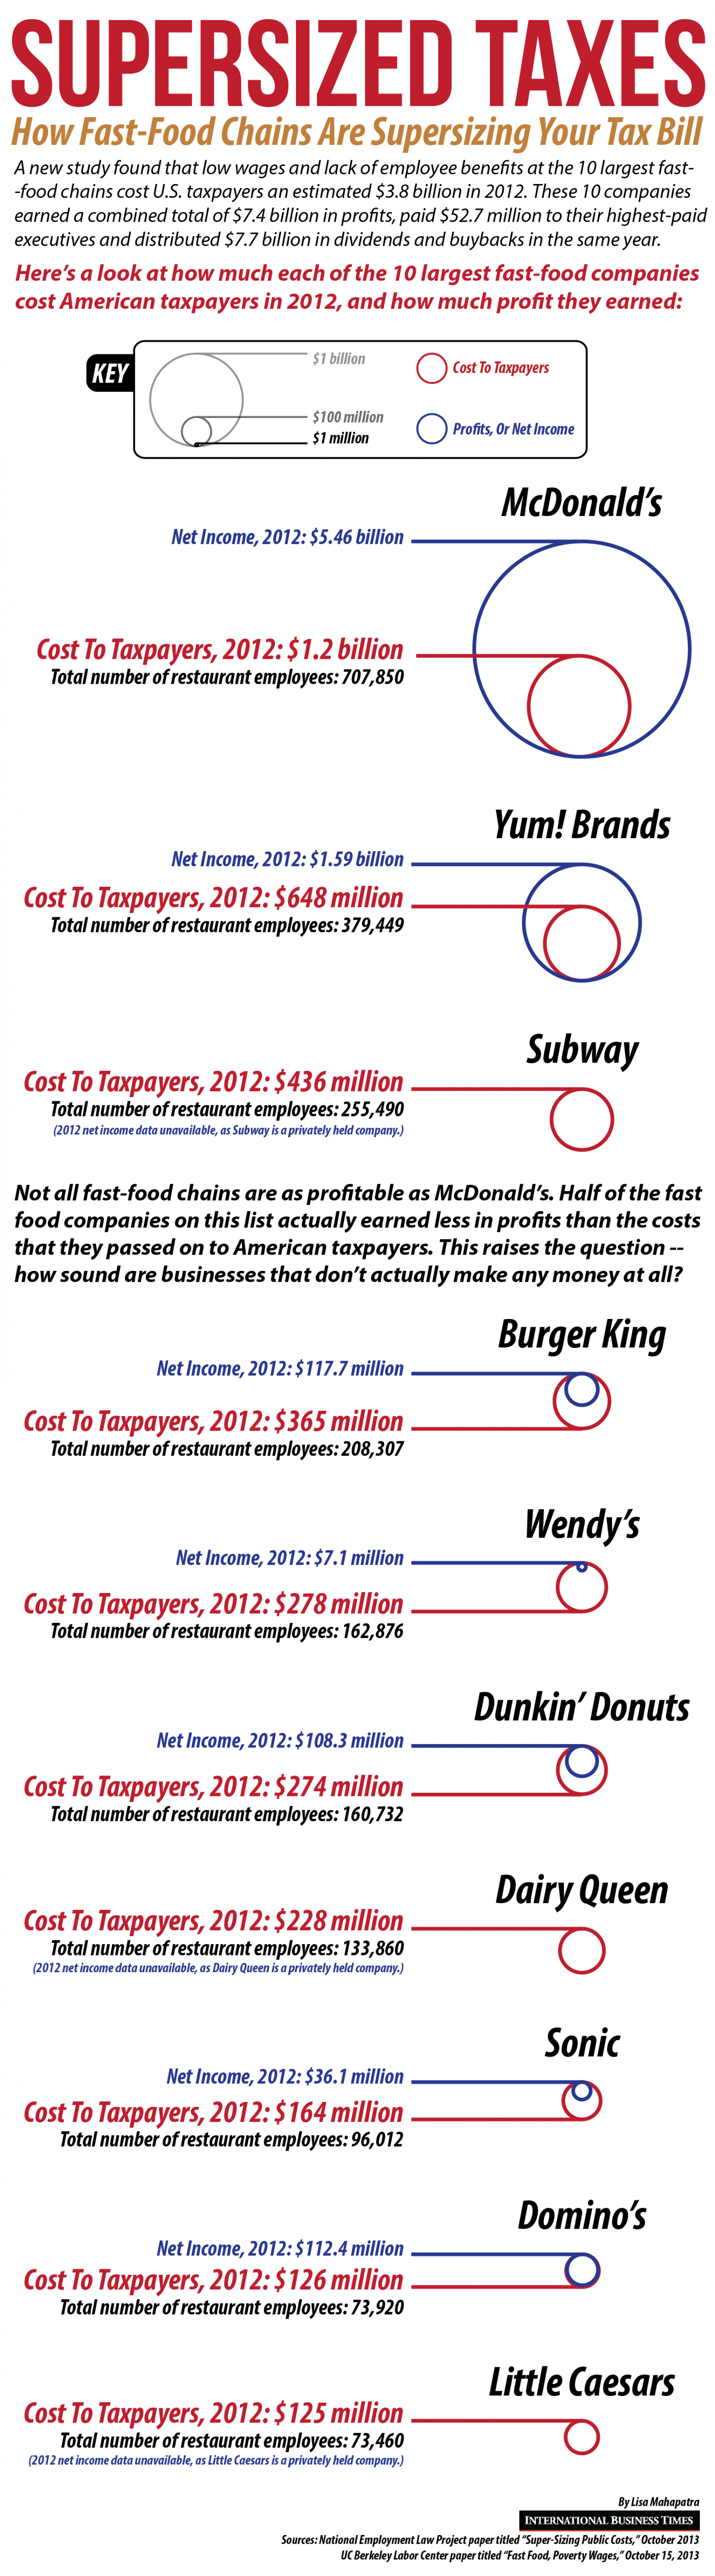 Supersized Taxes Infographic